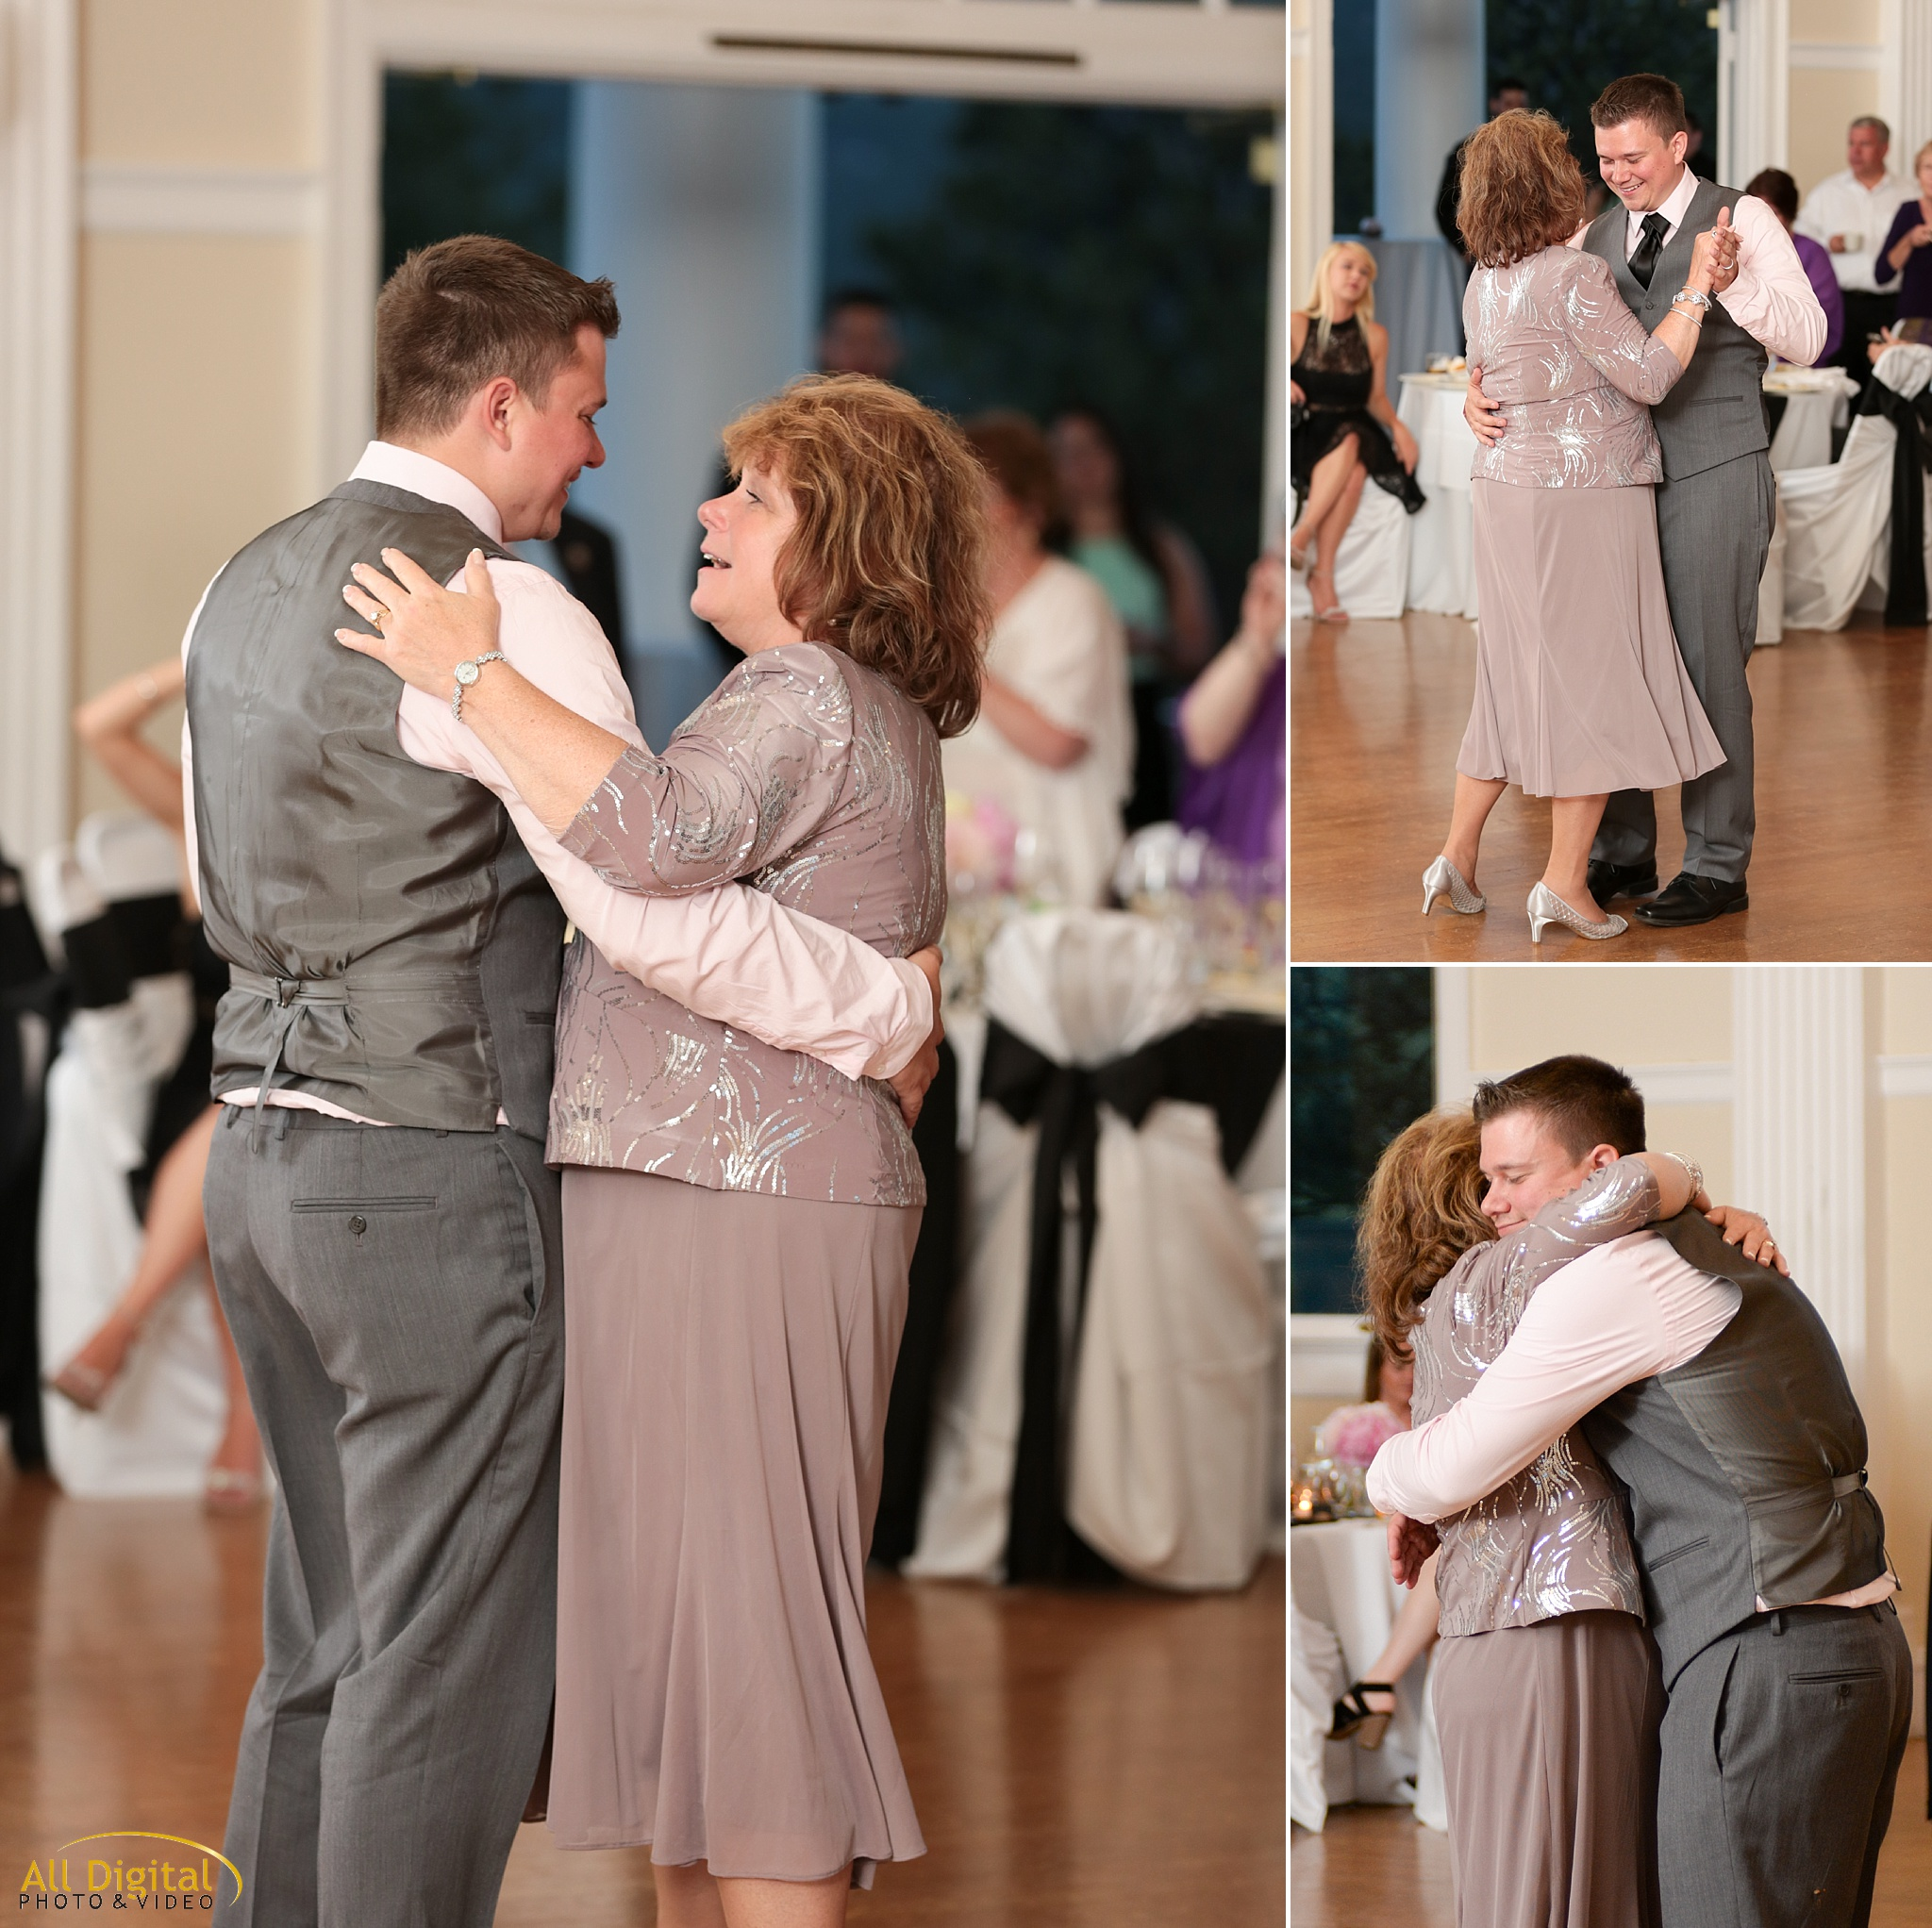 Mother & Son dance at the Stanley Hotel in Estes Park, Colorado.